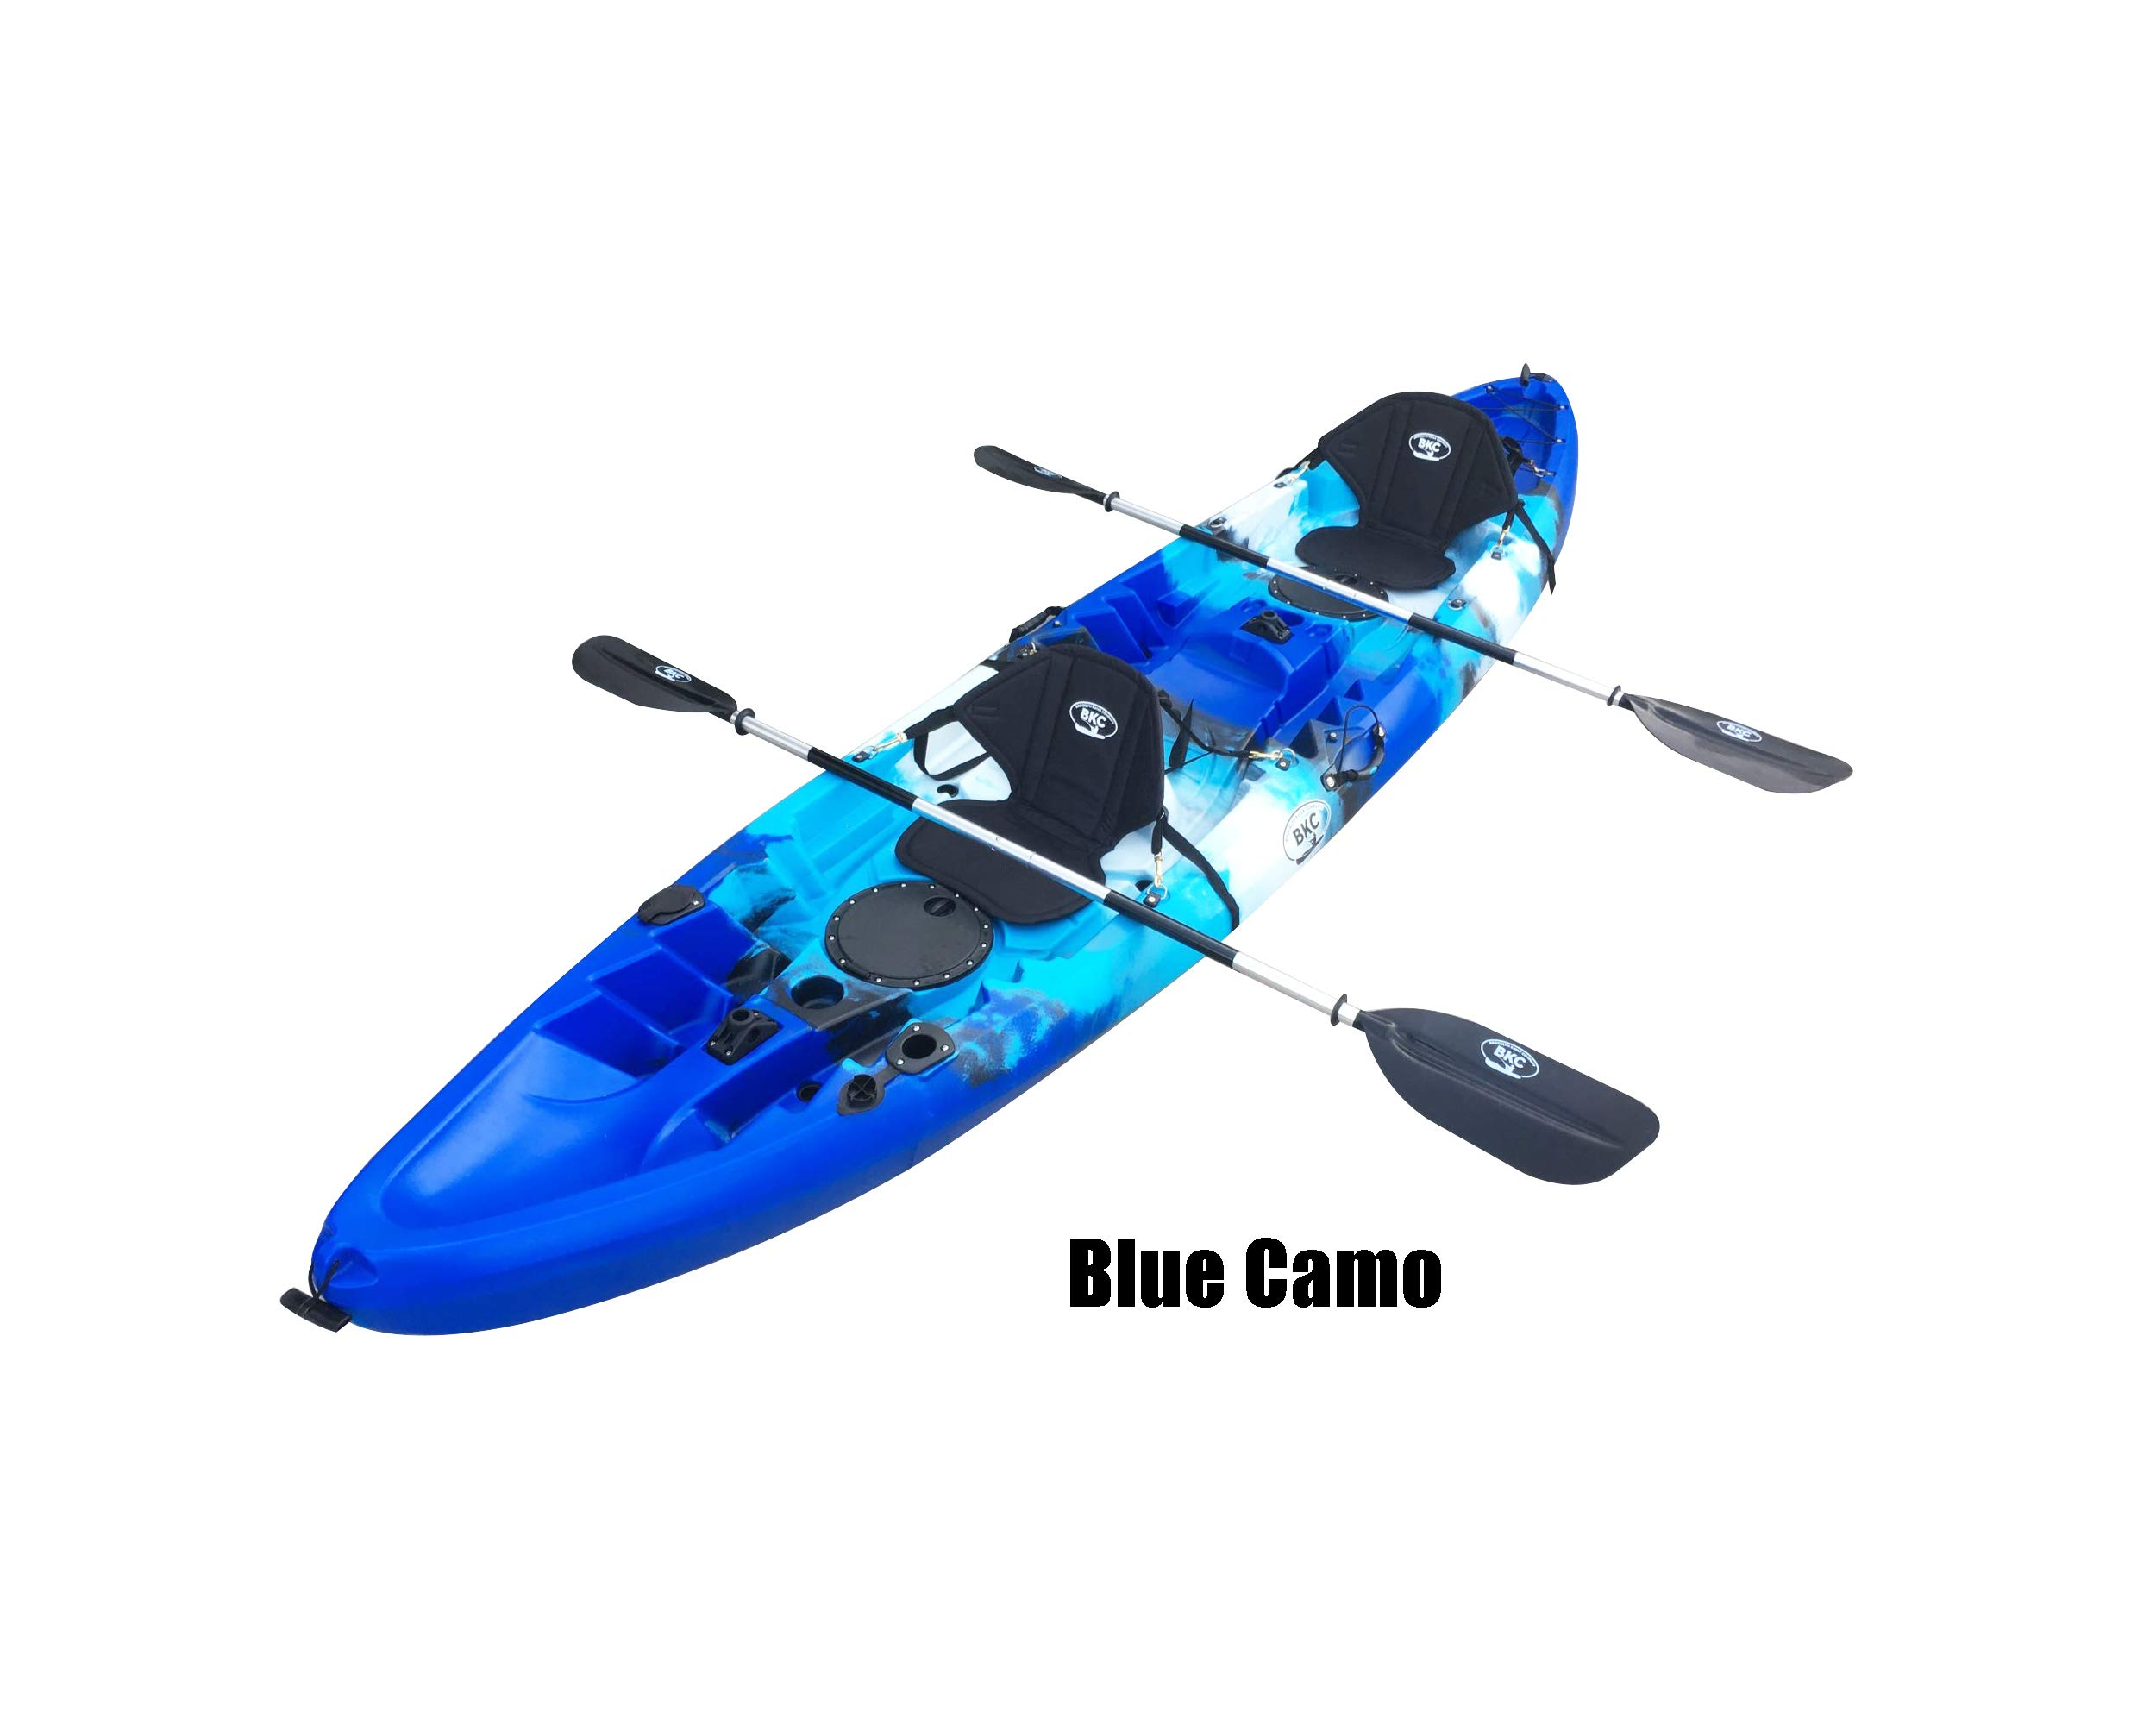 BKC UH-TK219 12 foot Tandem Sit On Top Kayak 2 or 3 person with 2 Paddles and Seats and 5 Fishing Rod Holders Included (Sky Blue) by Brooklyn Kayak Company